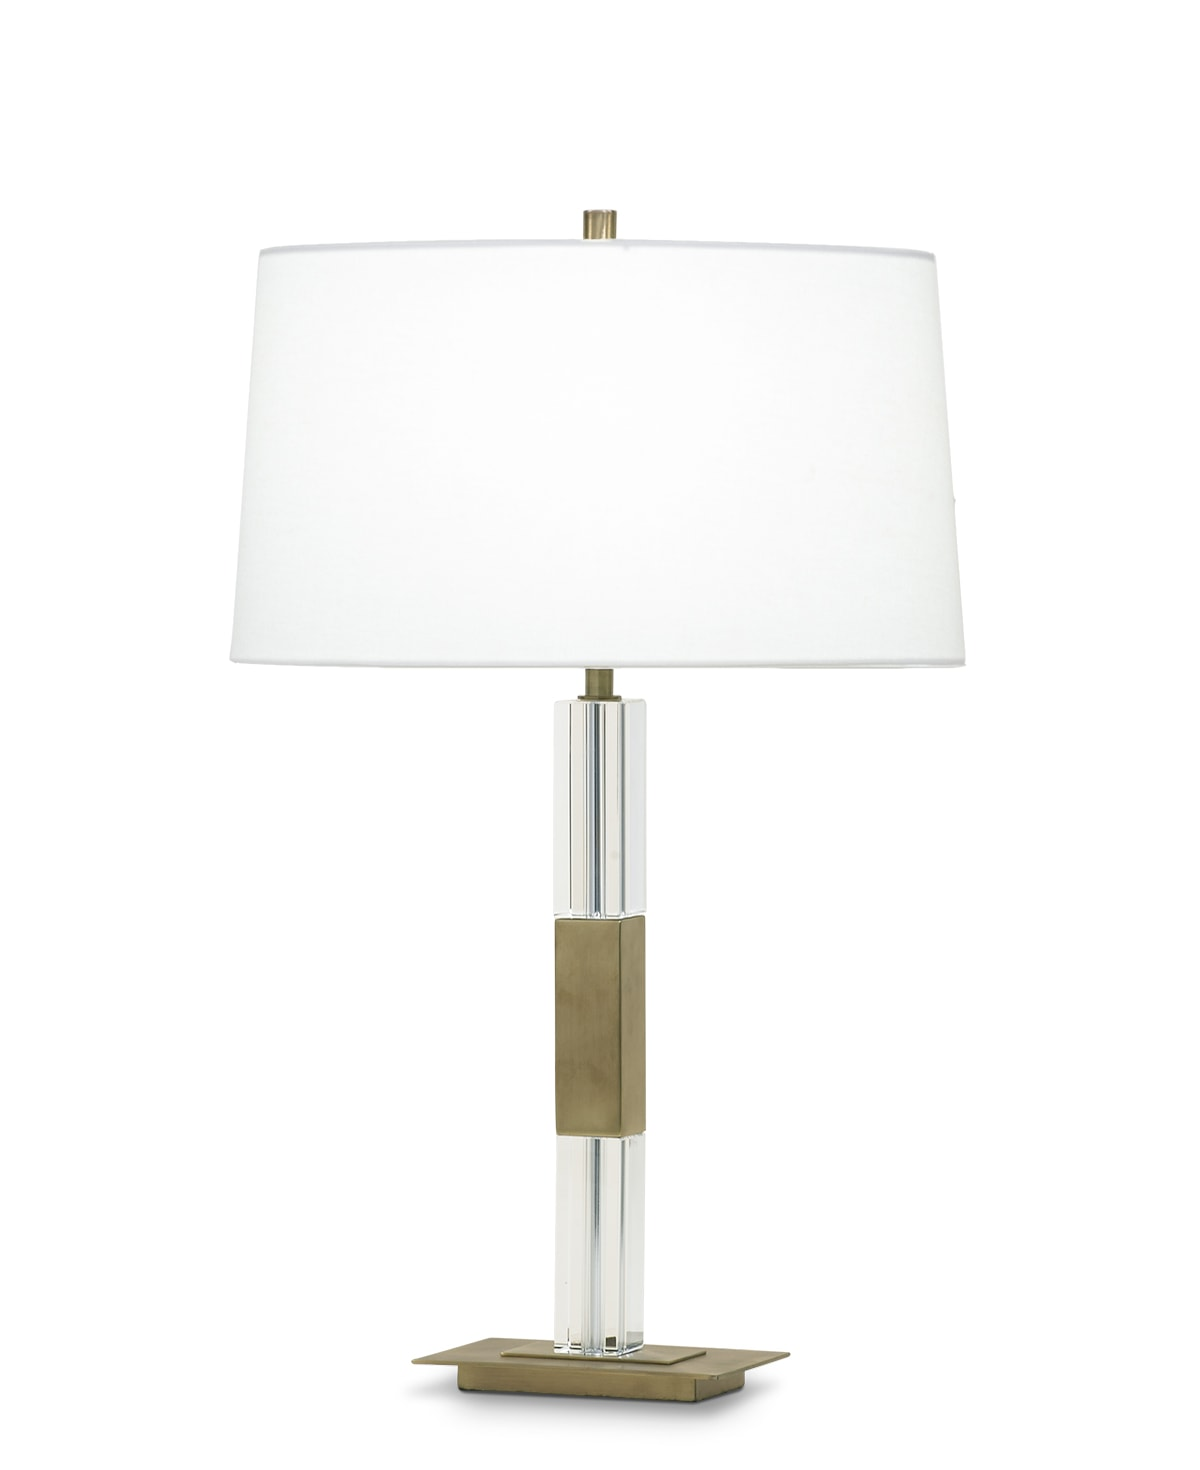 FlowDecor Elm Table Lamp in crystal and metal with antique brass finish and off-white linen oval shade (# 3637)